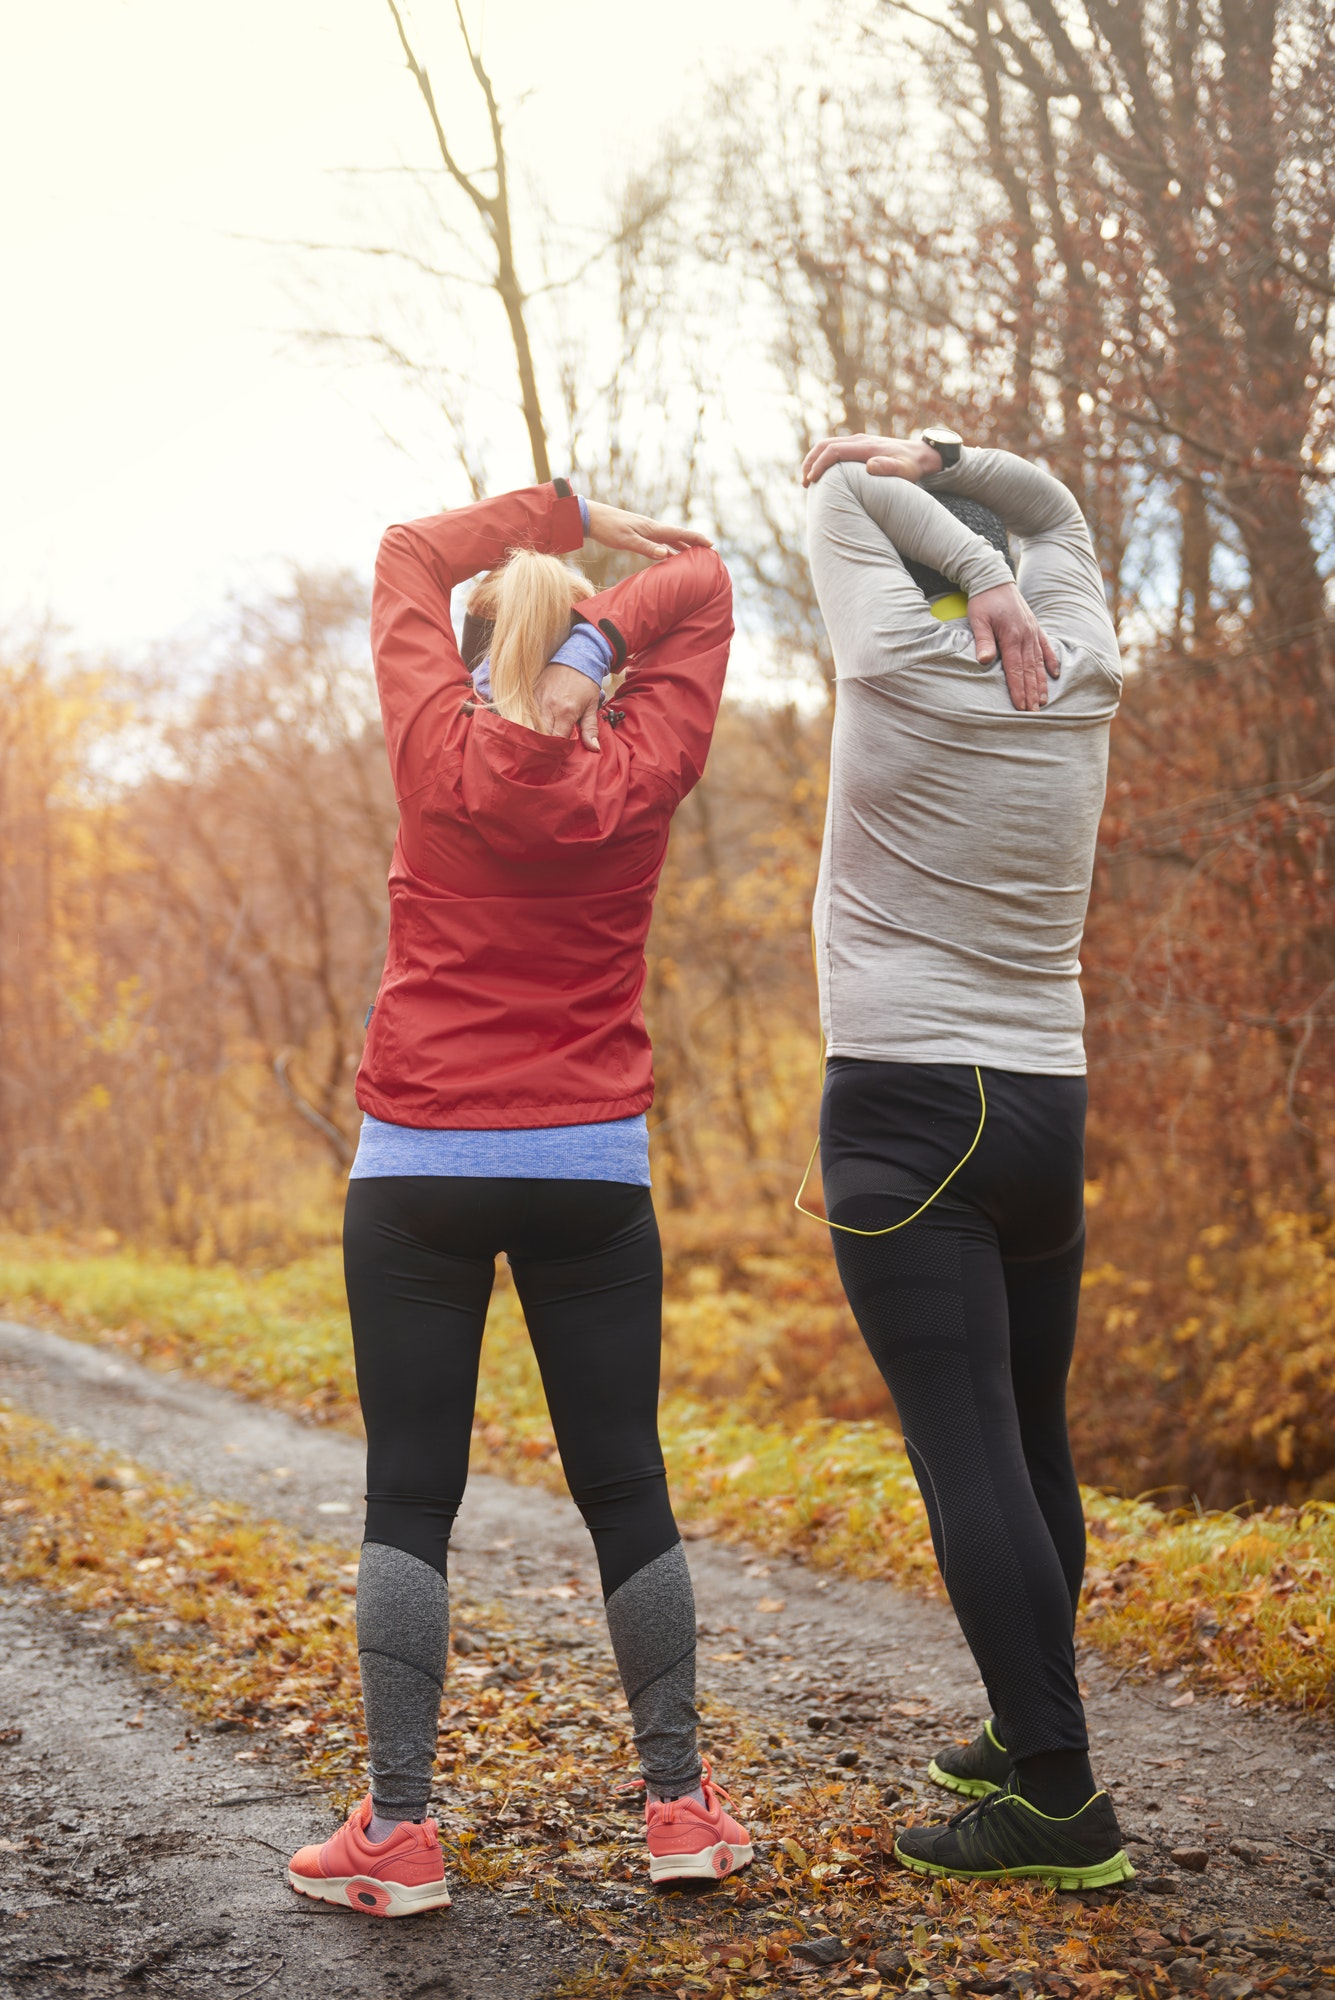 Physical activity is good for your health